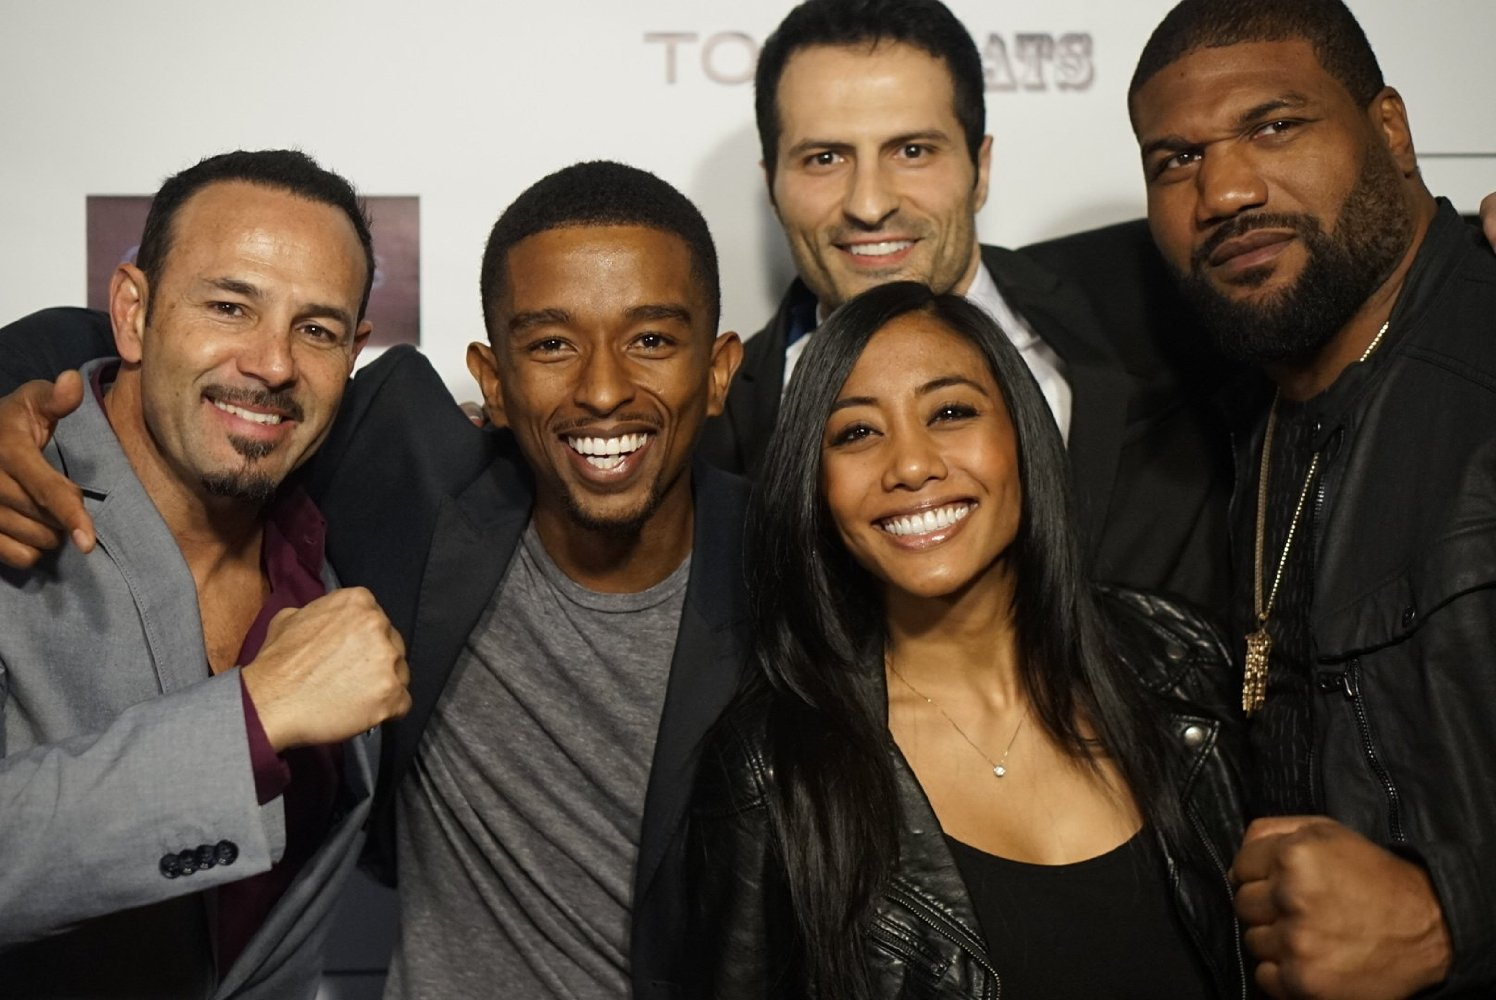 Donnabella Mortel, Kevin L Walker, Rampage Jackson, and Chavo Guerrrero Jr. at the Vigilante Diaries Premiere at Arclight Hollywood (Free Use and NO copyright exists)